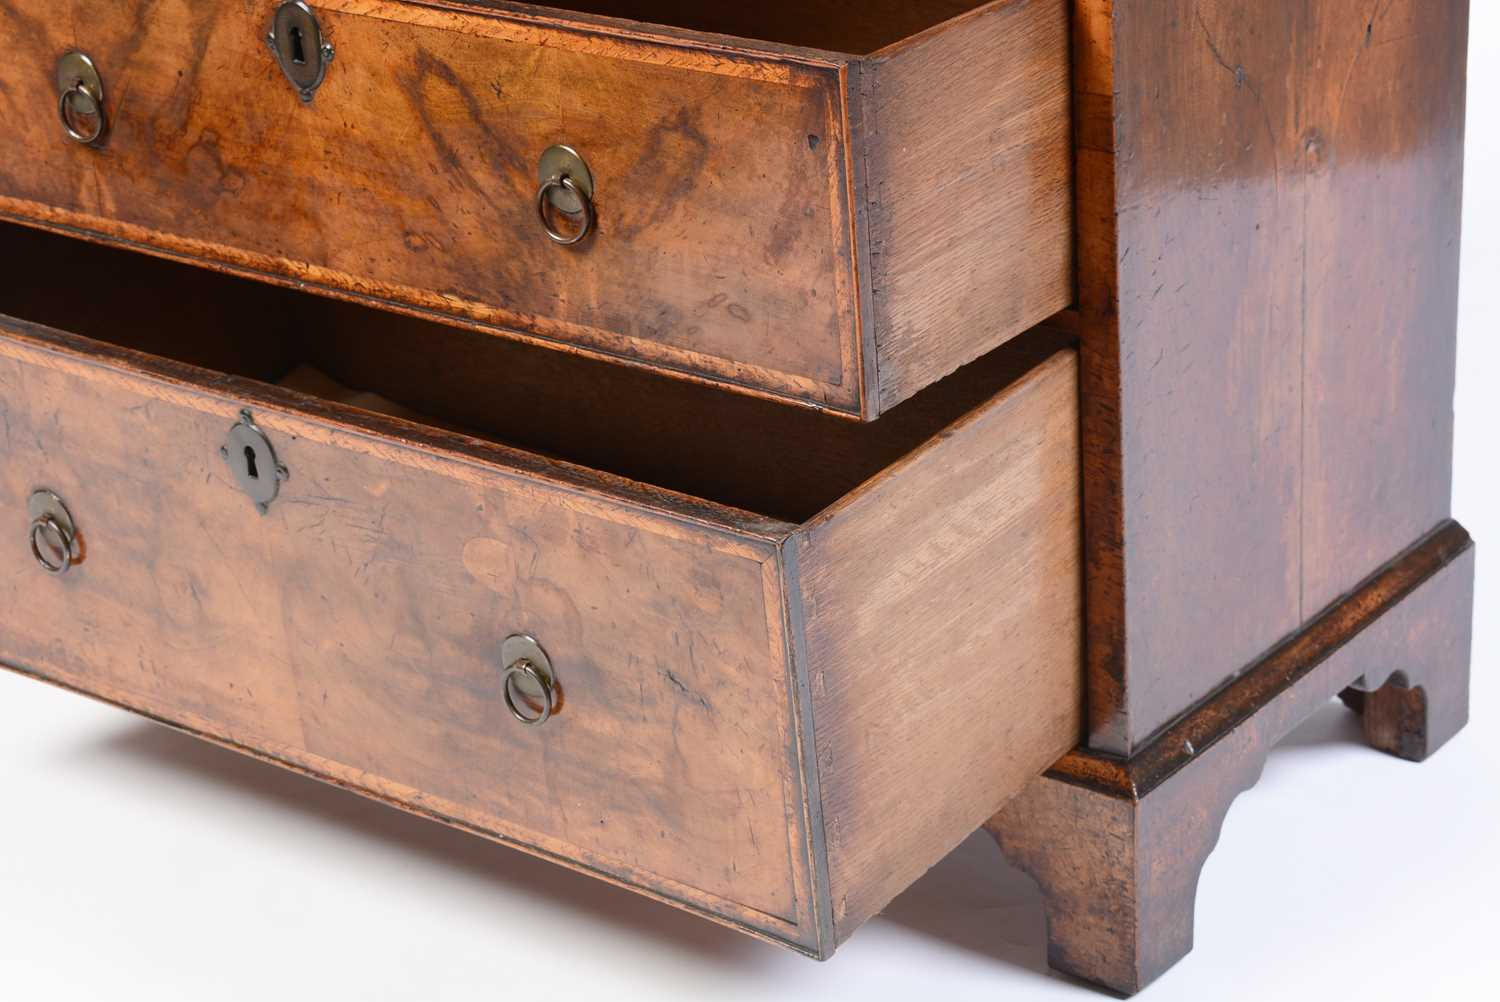 Early 18th Century walnut bachelors chest - Image 3 of 39